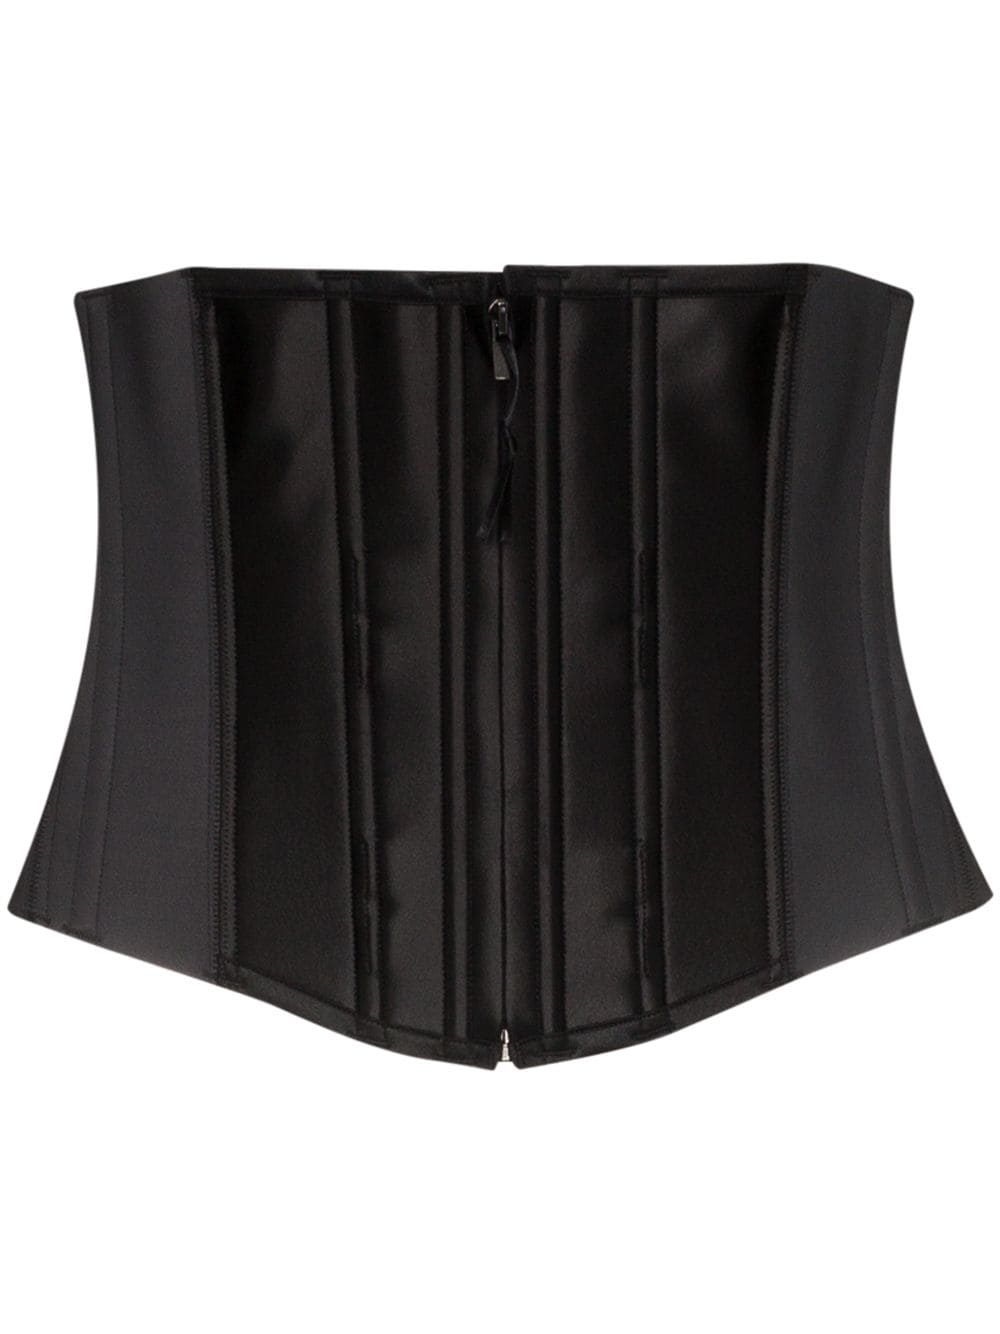 Spanx under sculpture waist cincher corset - Black von Spanx